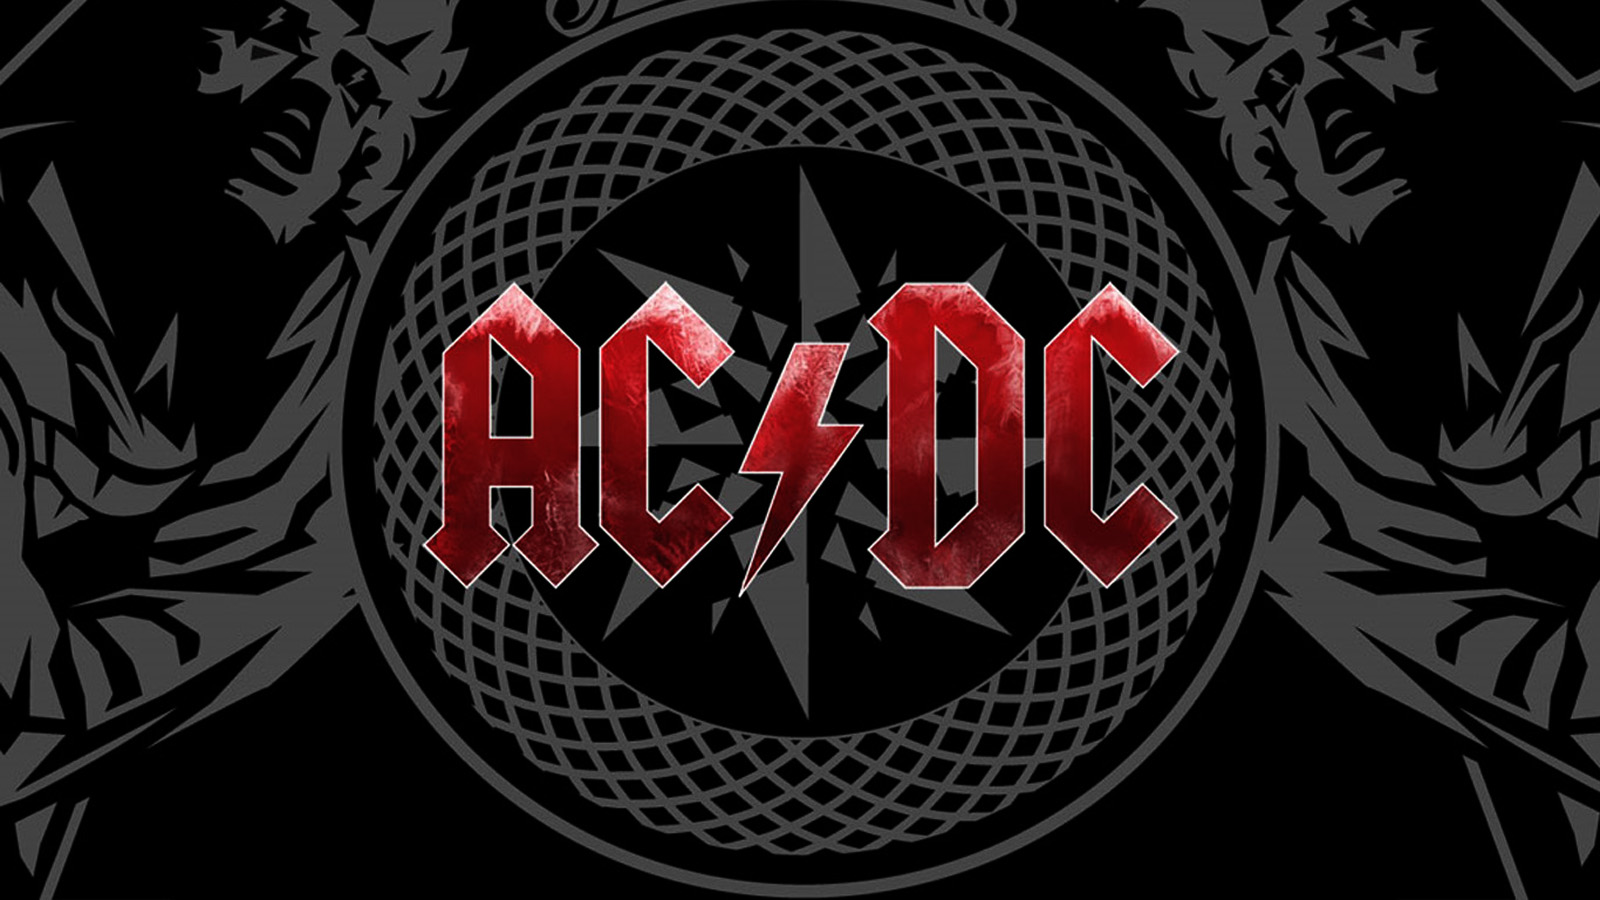 Download Central Wallpaper AC DC Music Band HD Wallpapers Album